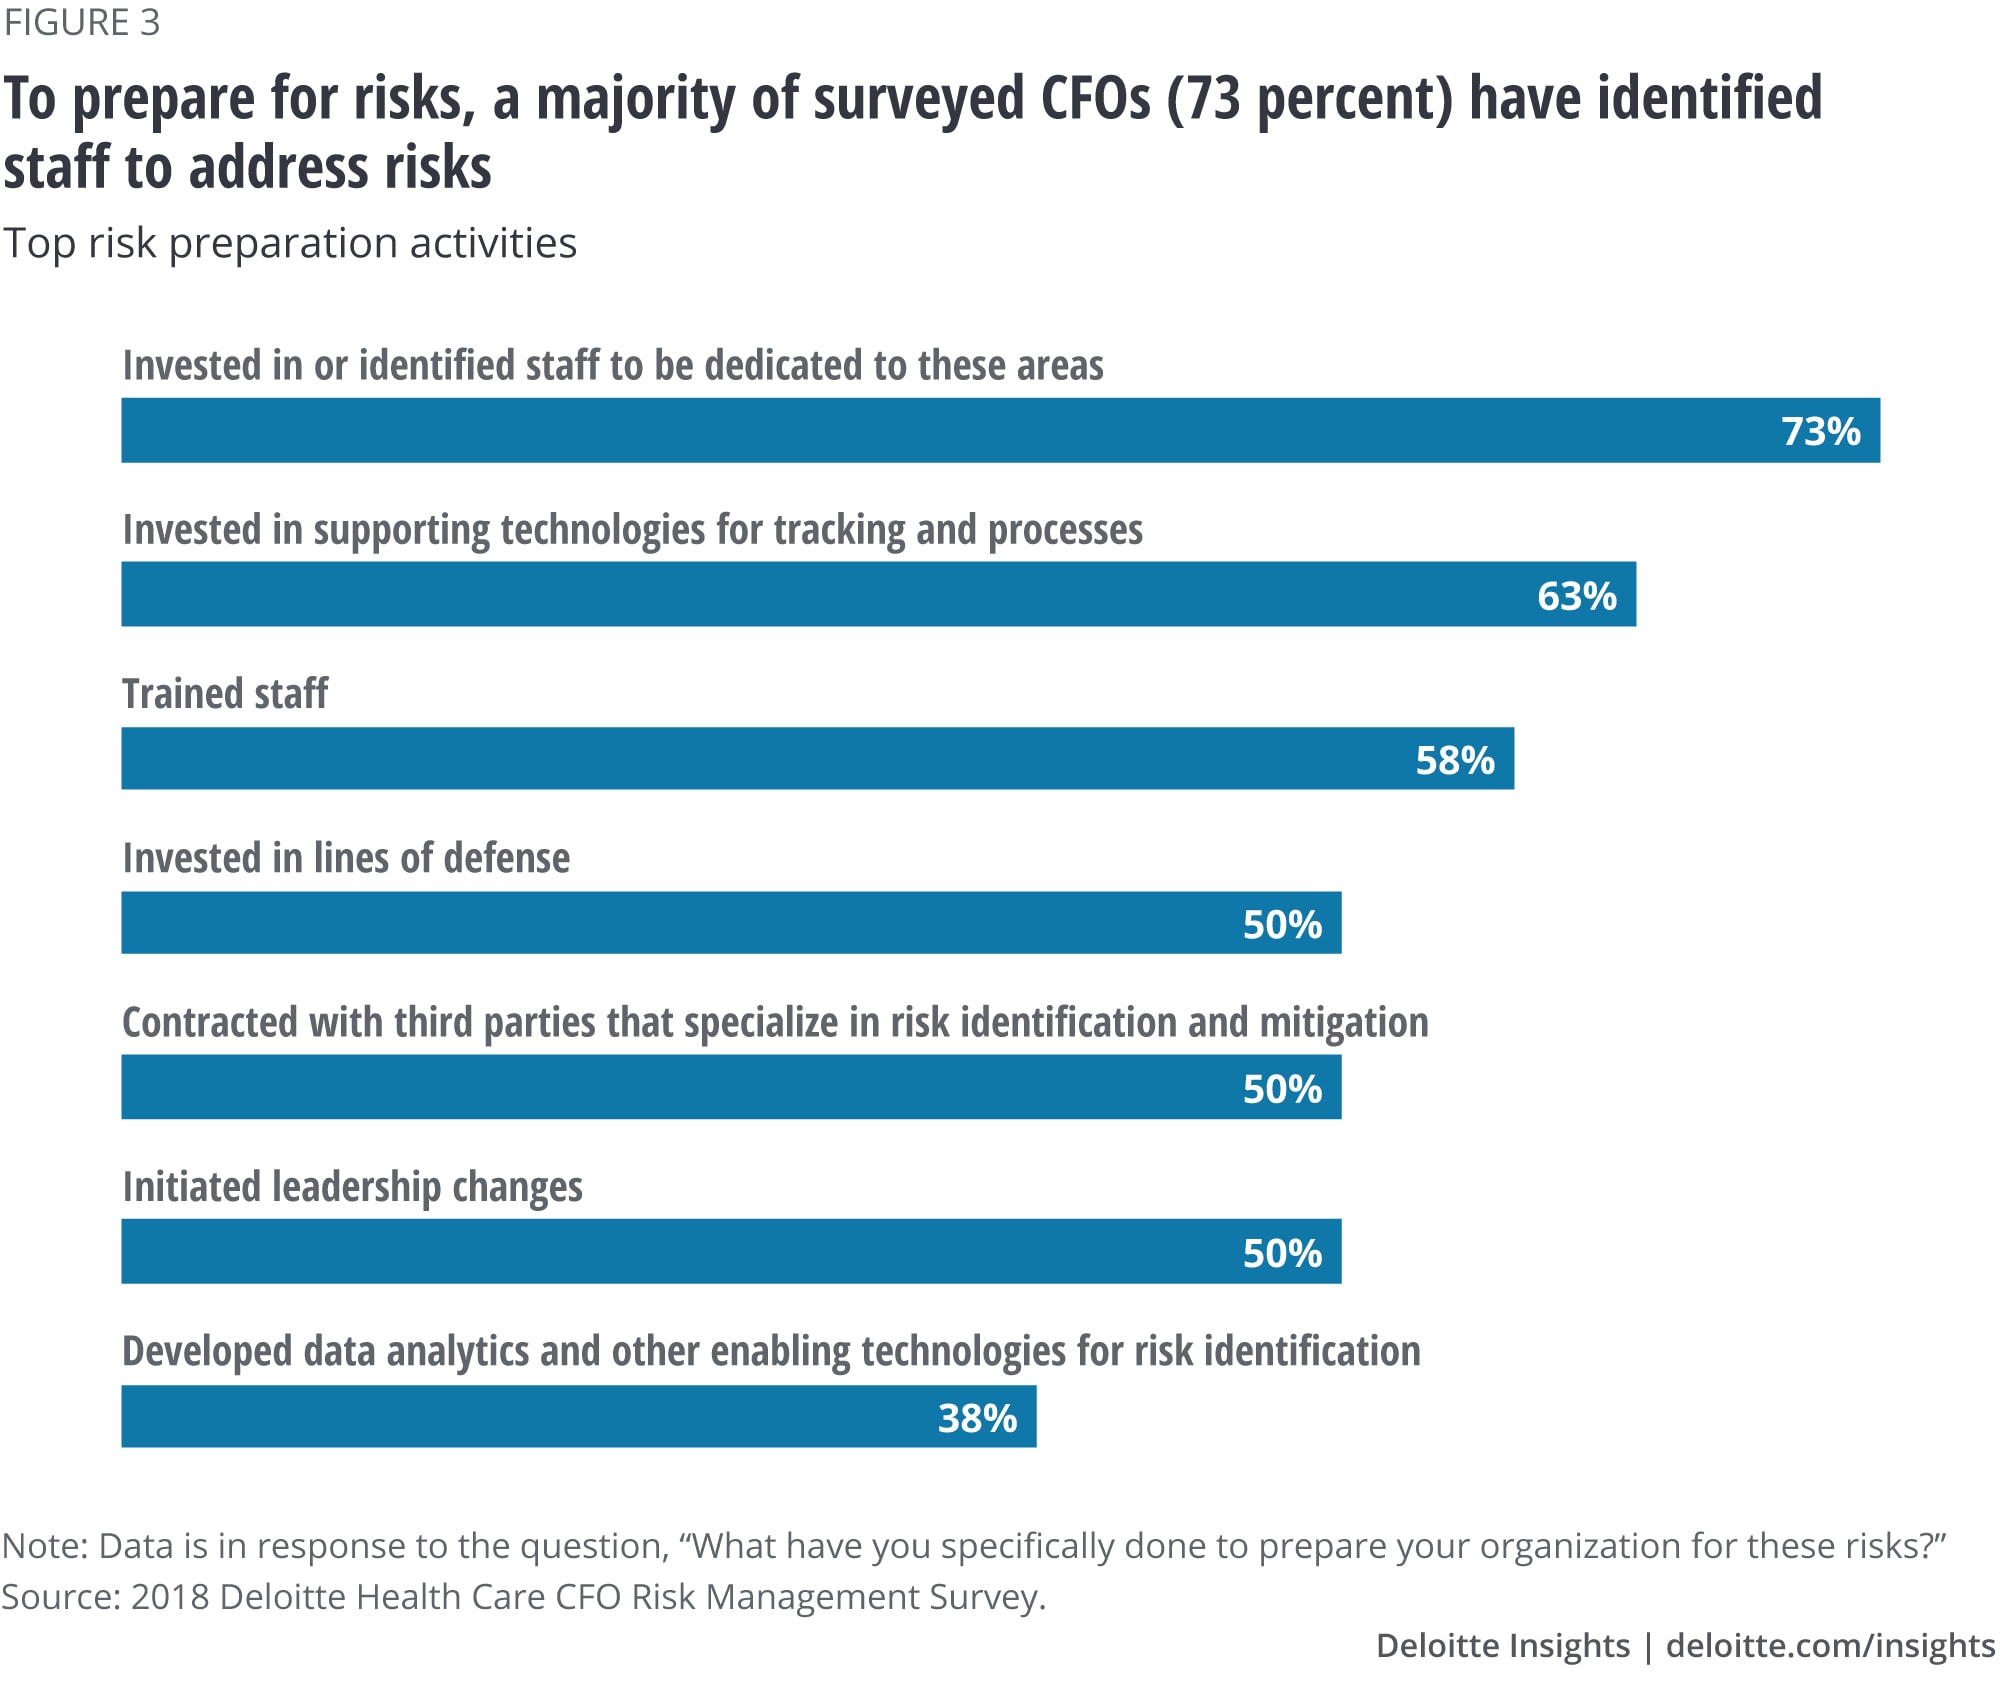 To prepare for risks, a majority of surveyed CFOs (73 percent) have identified staff to address risks